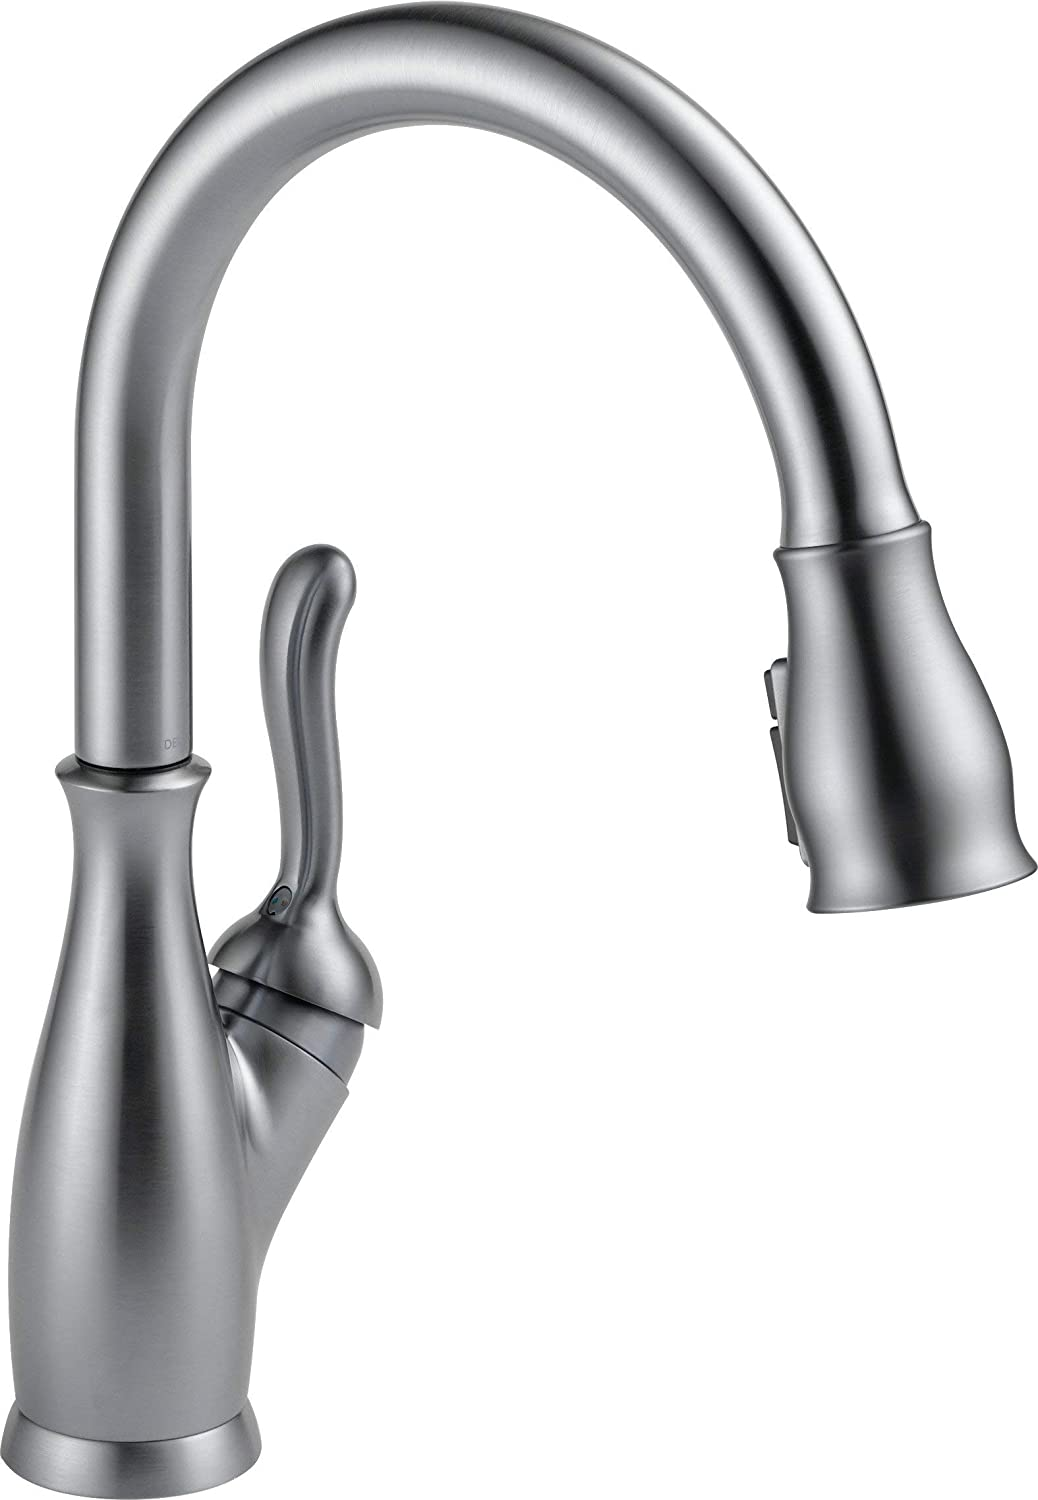 Delta Faucet Leland Single-Handle Kitchen Sink Faucet with Pull Down Sprayer, ShieldSpray Technology and Magnetic Docking Spray Head, Arctic Stainless 9178-AR-DST (Certified Refurbished)